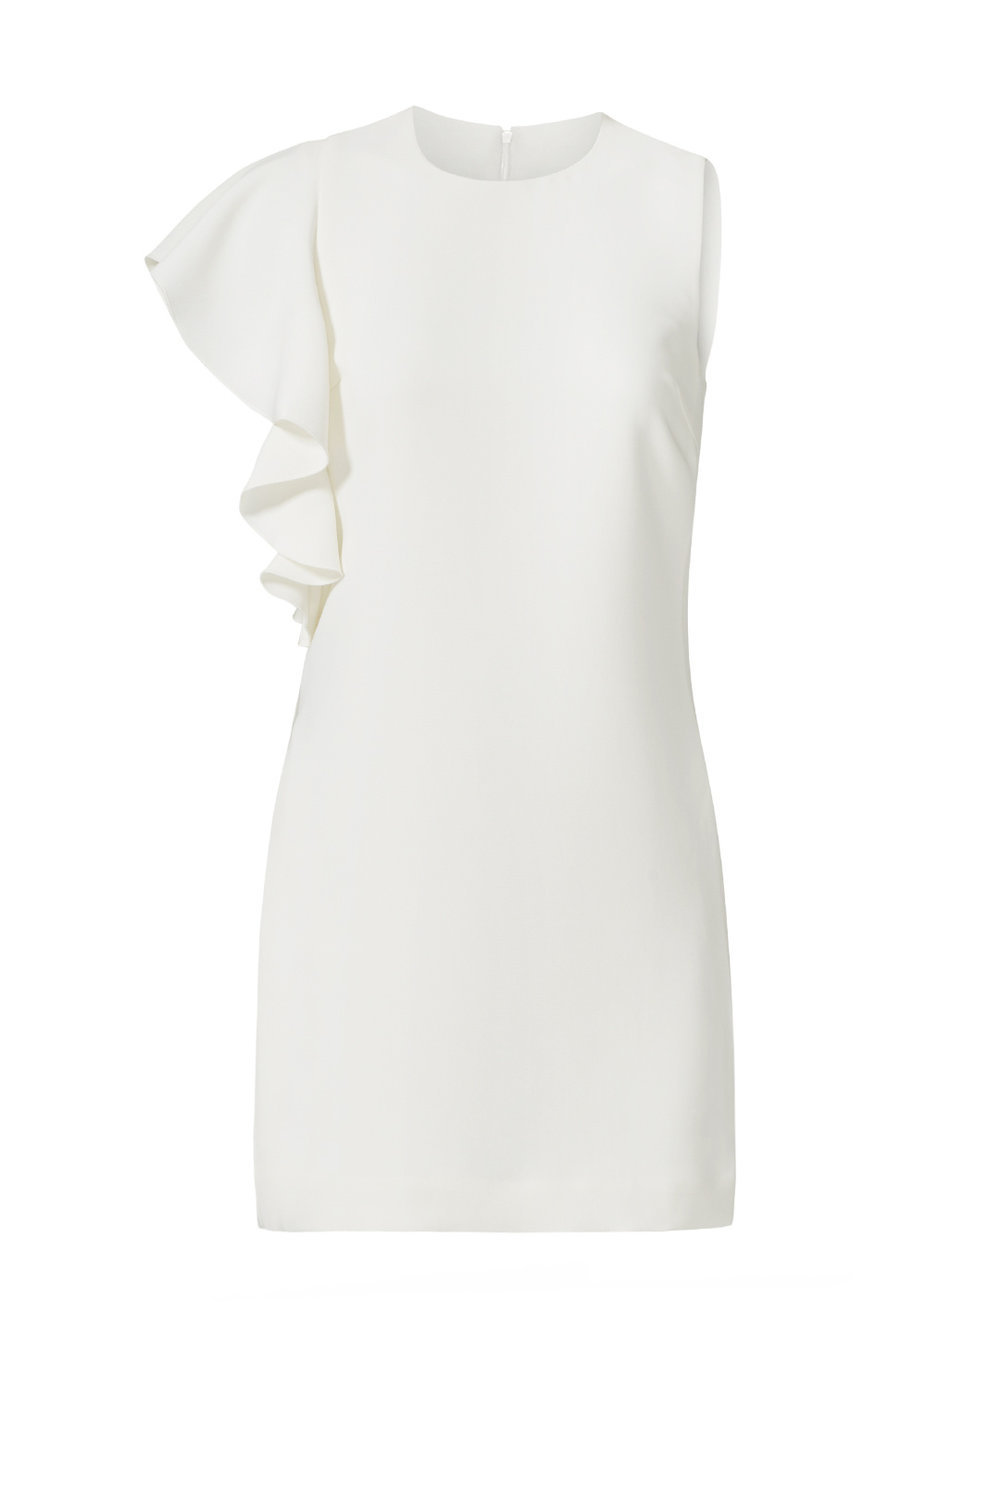 White Ruffle Dress.jpg